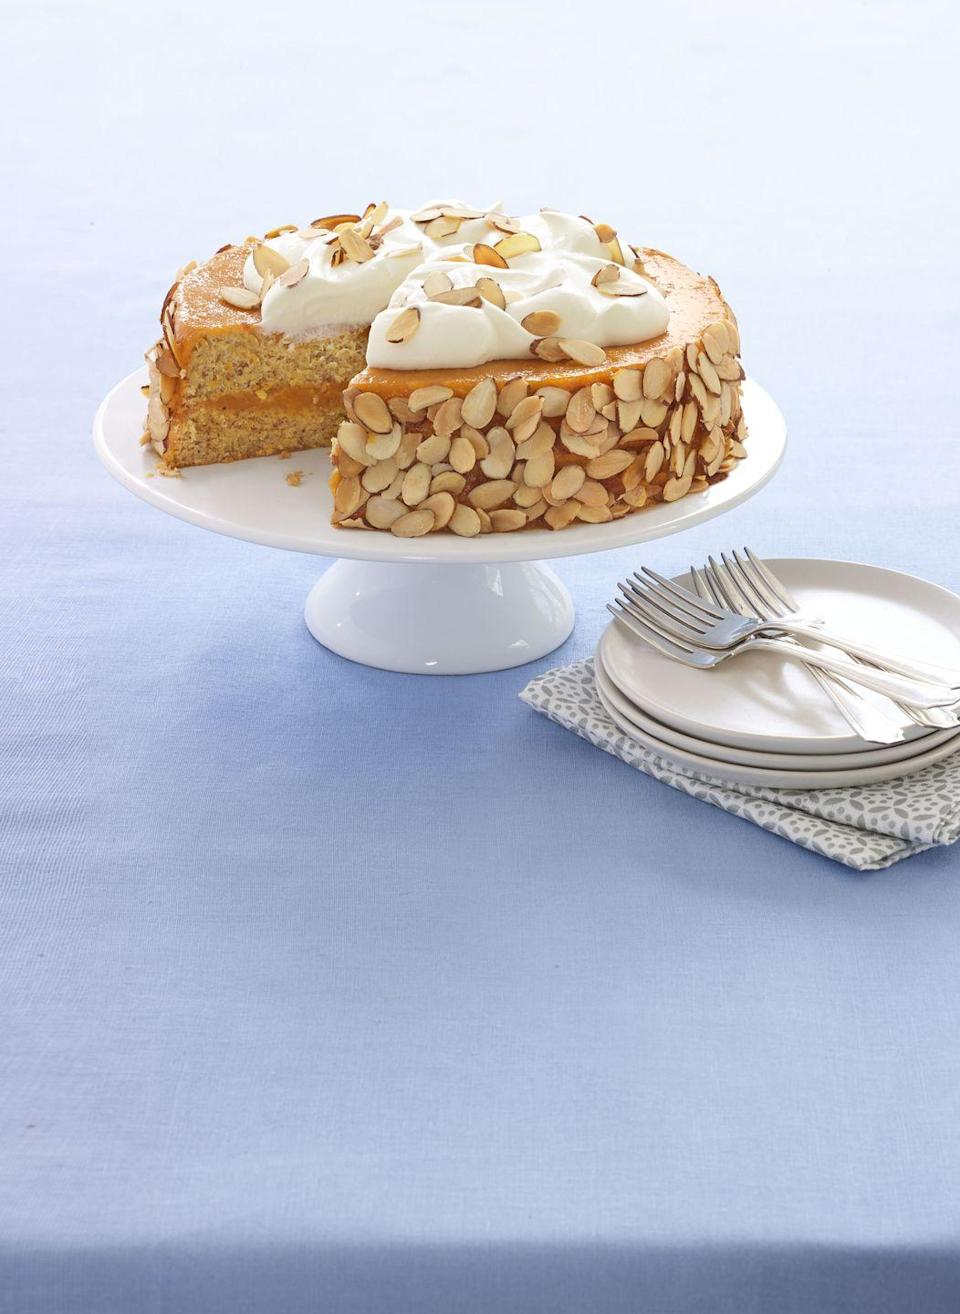 """<p>Use matzo cake meal to make this decadent treat. Seder has never been sweeter!</p><p><em><a href=""""https://www.womansday.com/food-recipes/food-drinks/recipes/a53989/almond-apricot-cake-recipe/"""" rel=""""nofollow noopener"""" target=""""_blank"""" data-ylk=""""slk:Get the recipe from Woman's Day »"""" class=""""link rapid-noclick-resp"""">Get the recipe from Woman's Day »</a></em></p>"""